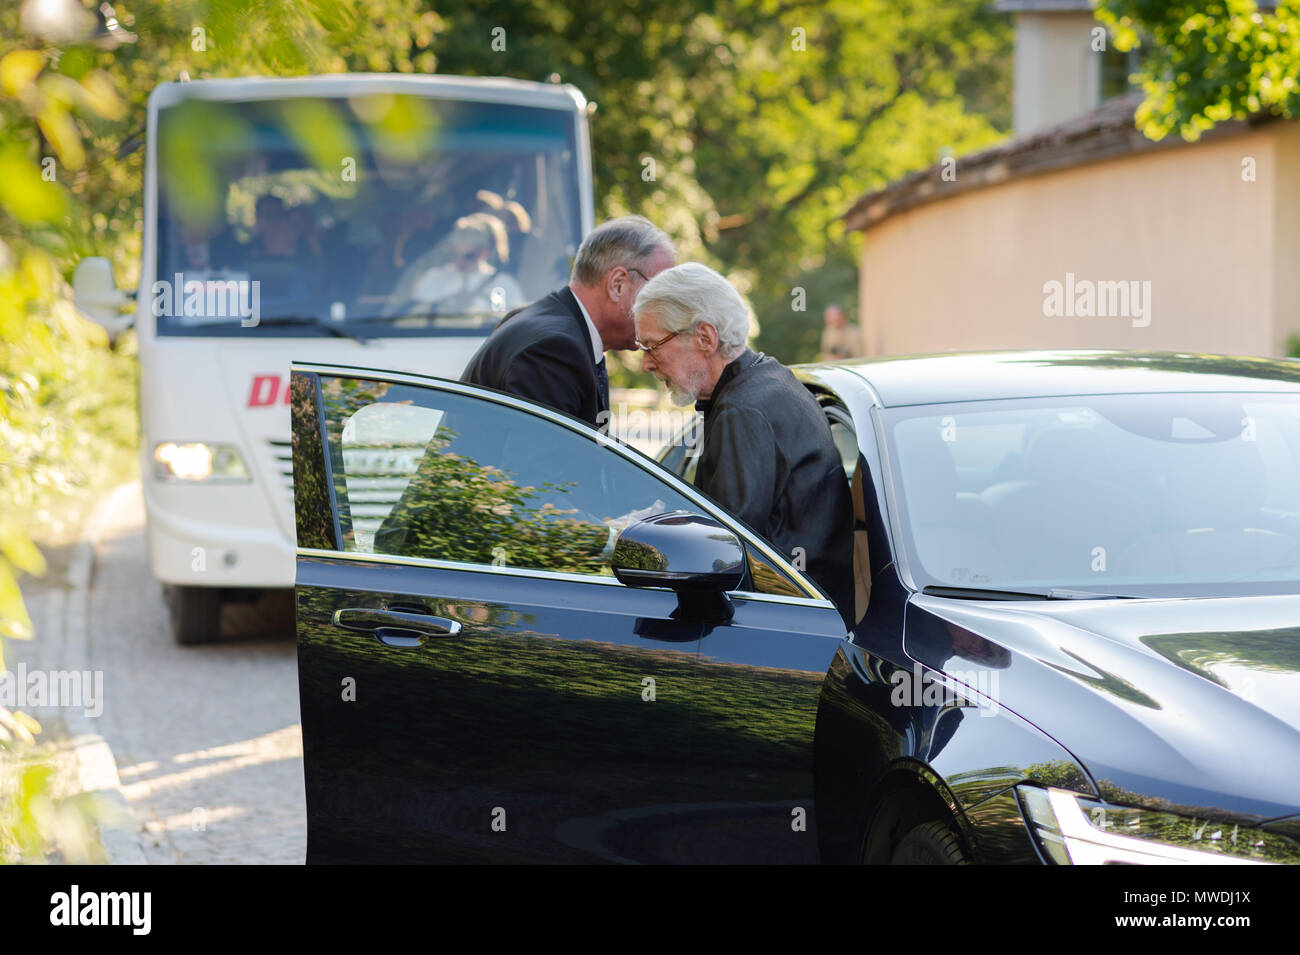 Stockholm, Sweden, May 31, 2018. Crisis in the Swedish Academy. Members of the Swedish Academy arrive at Bergsgarden, Djurgarden, Stockholm for late dinner after previous meetings at the Swedish Academy in the Old town, Stockholm. Göran Malmqvist arrives. Credit: Barbro Bergfeldt/Alamy Live News - Stock Image